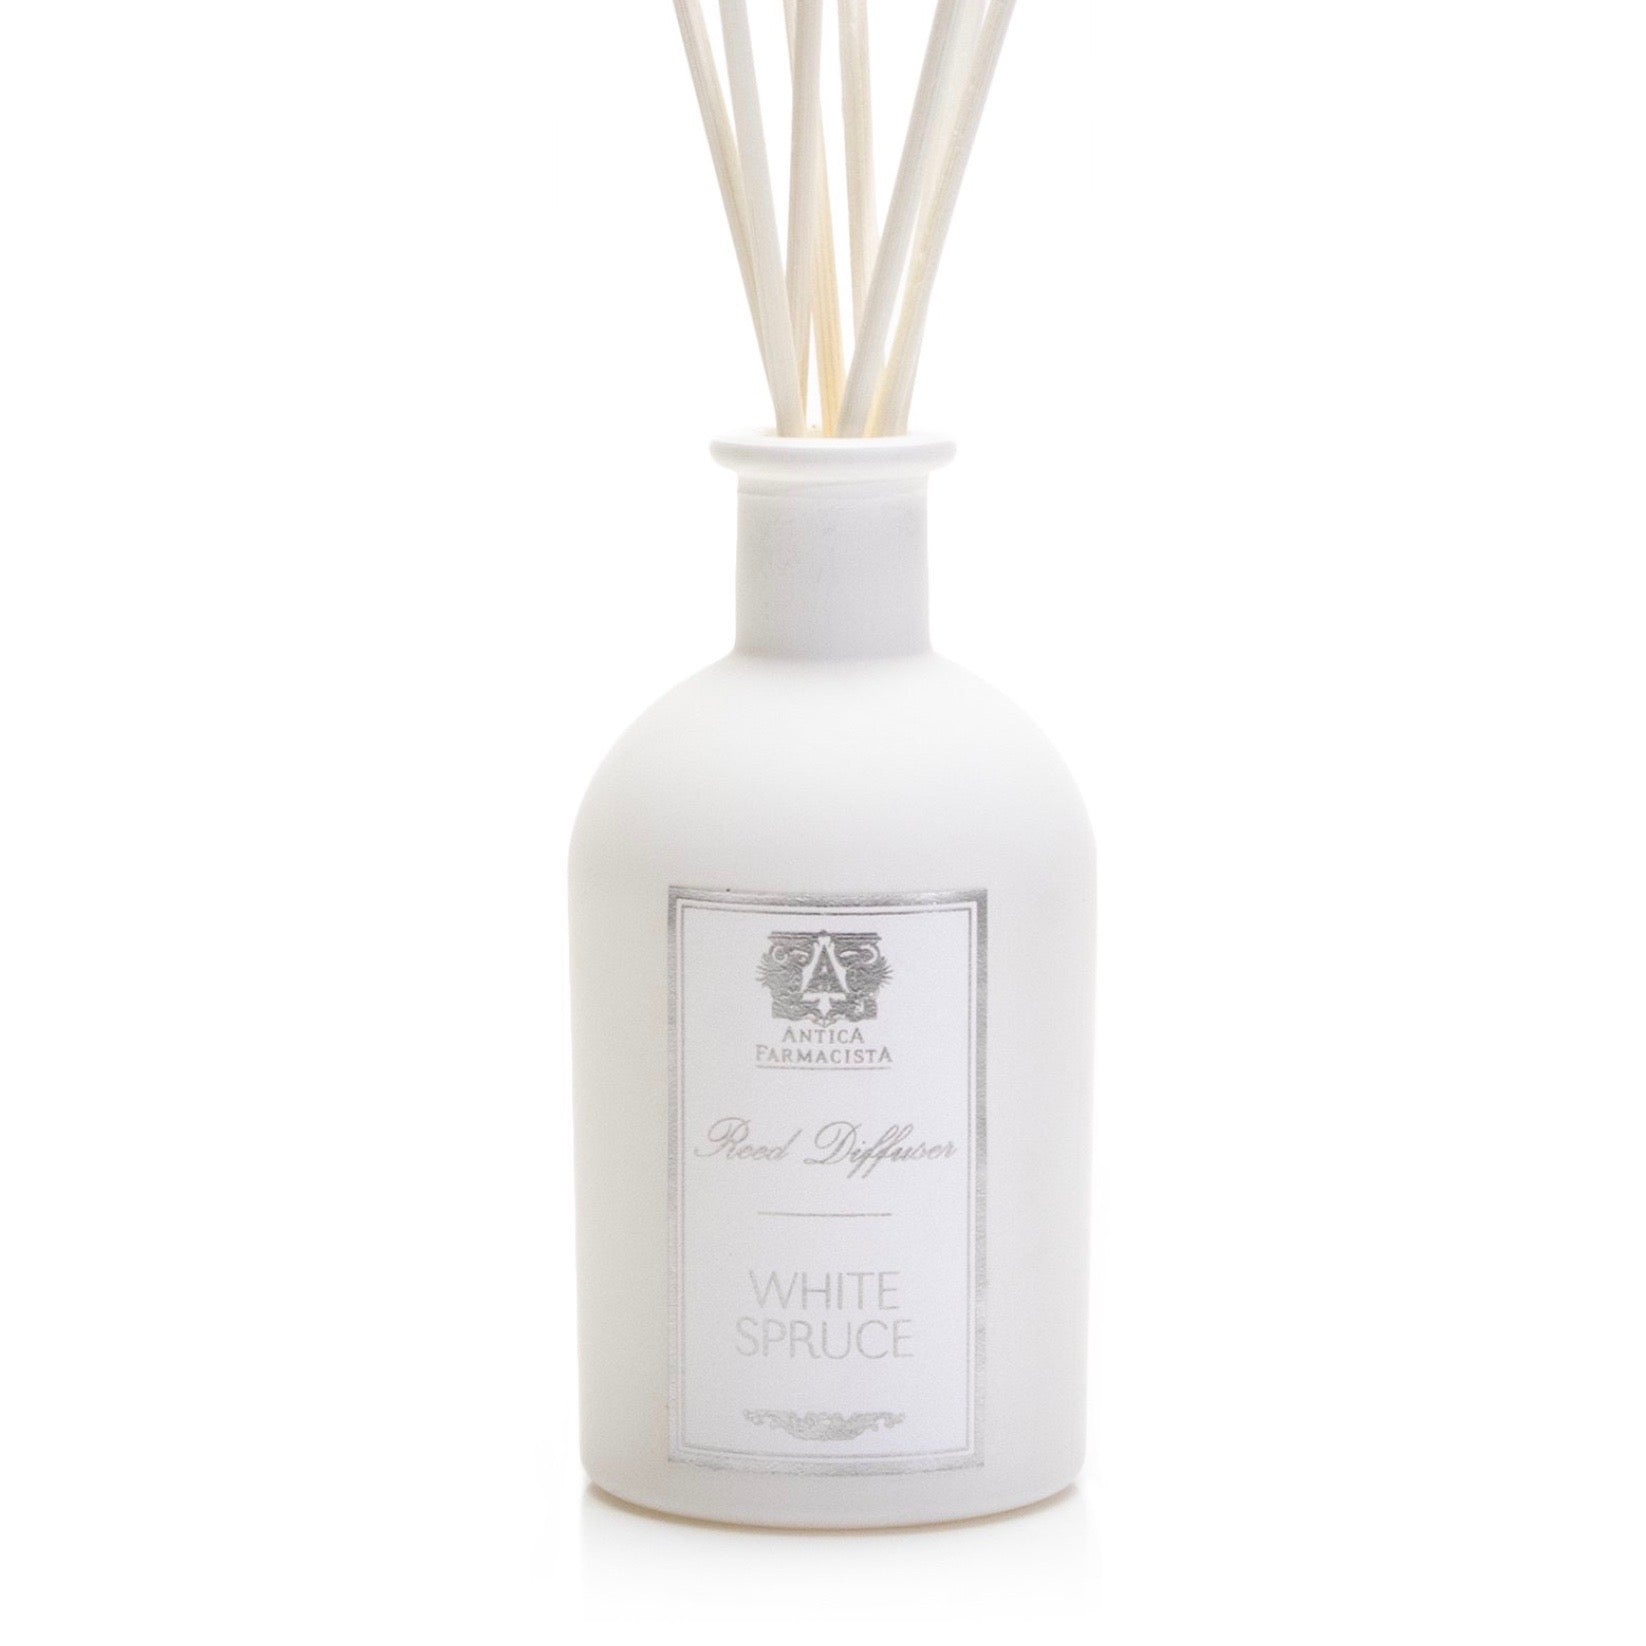 Antica Farmacista White Spruce Diffuser 250ml - Limited Edition